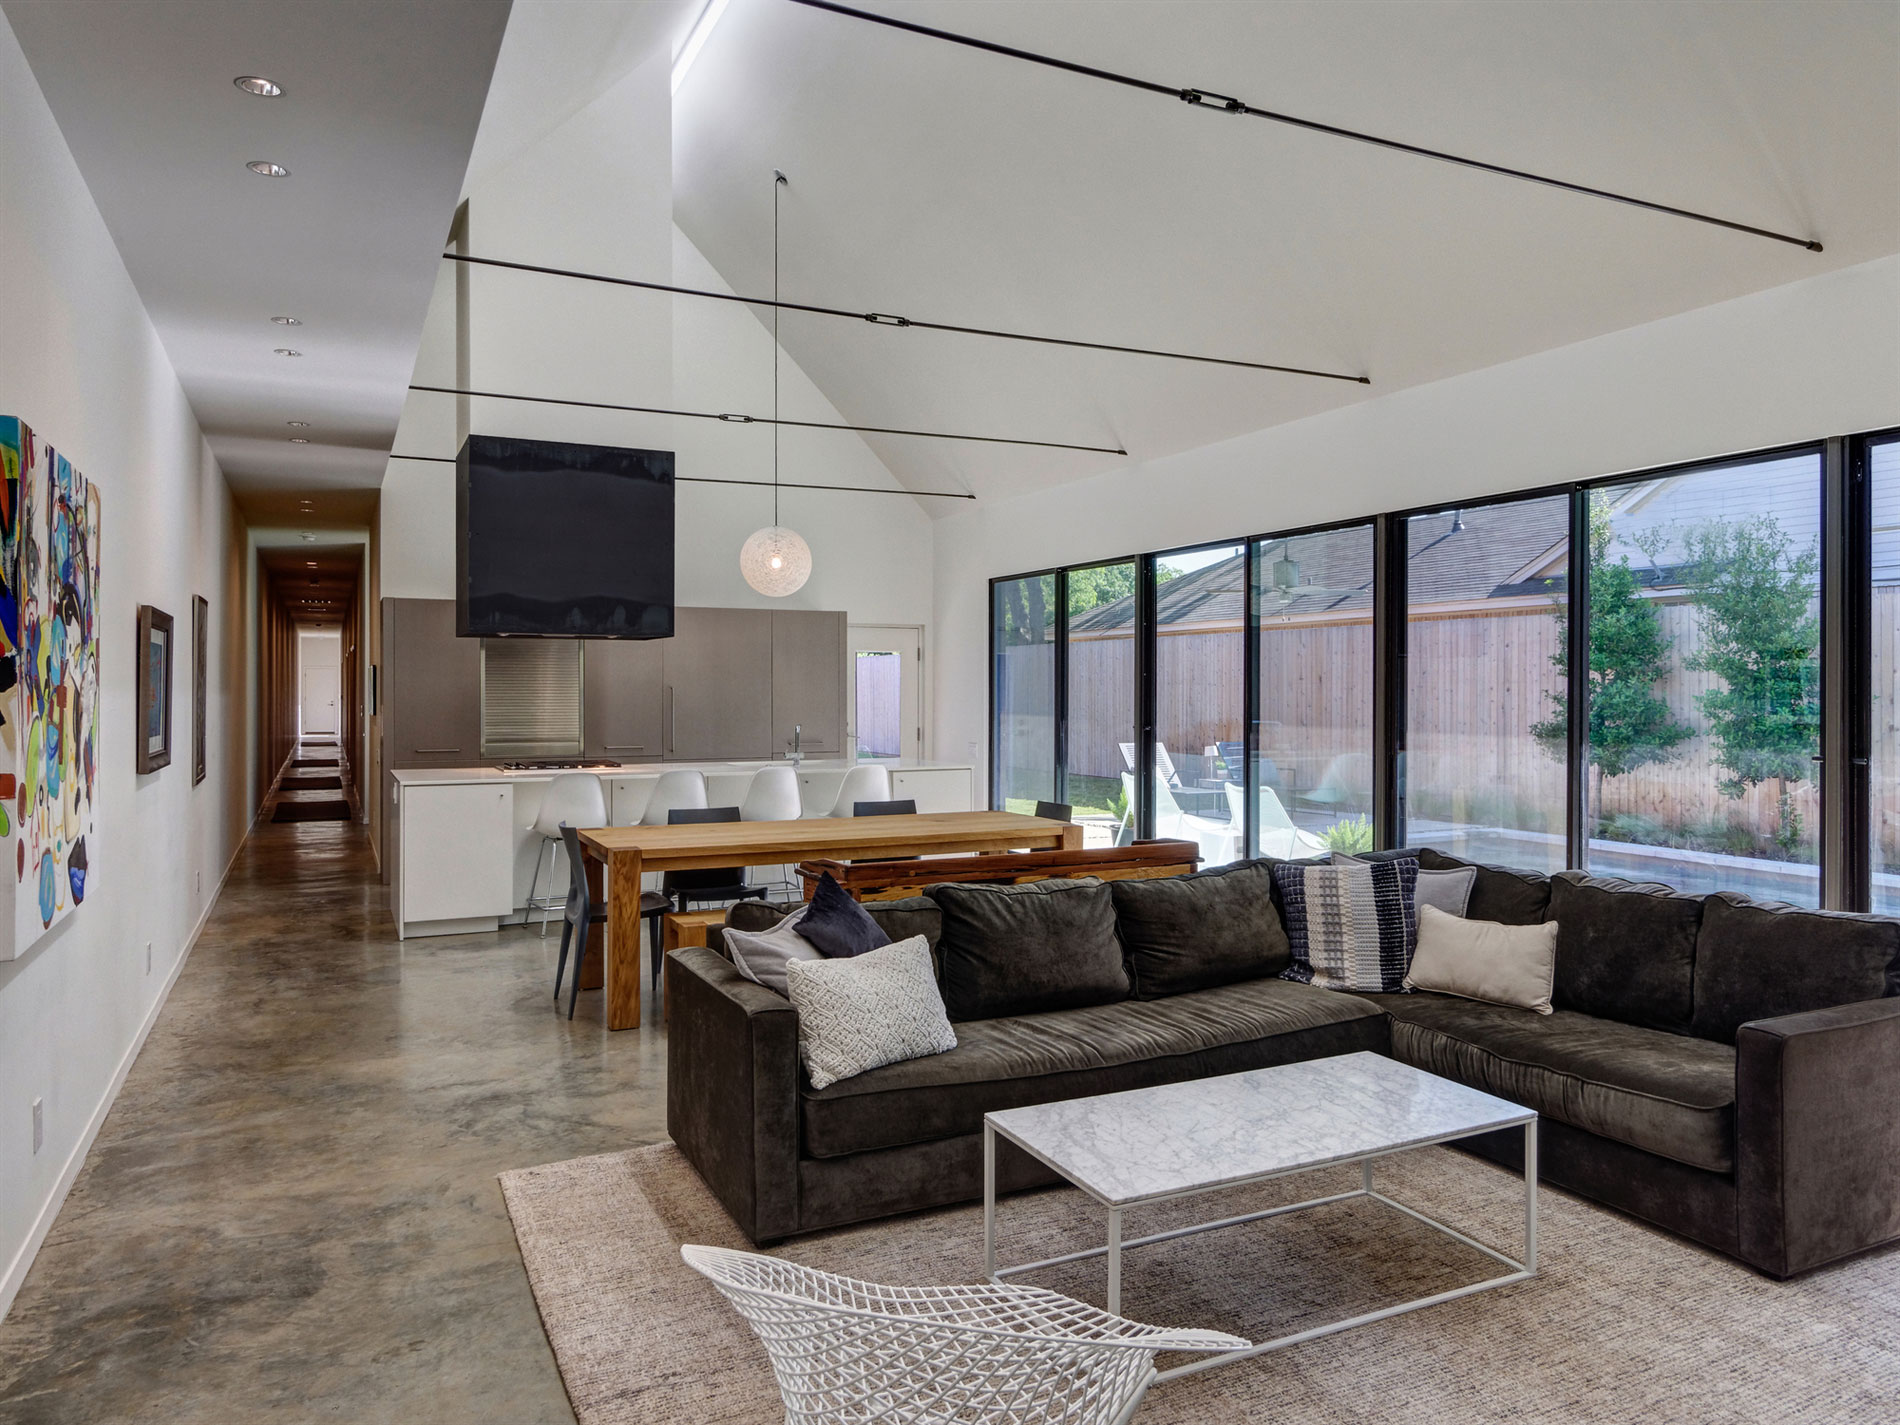 A 3,700-Square-Foot Single-Family Residence Made of Recycled Materials in Dallas